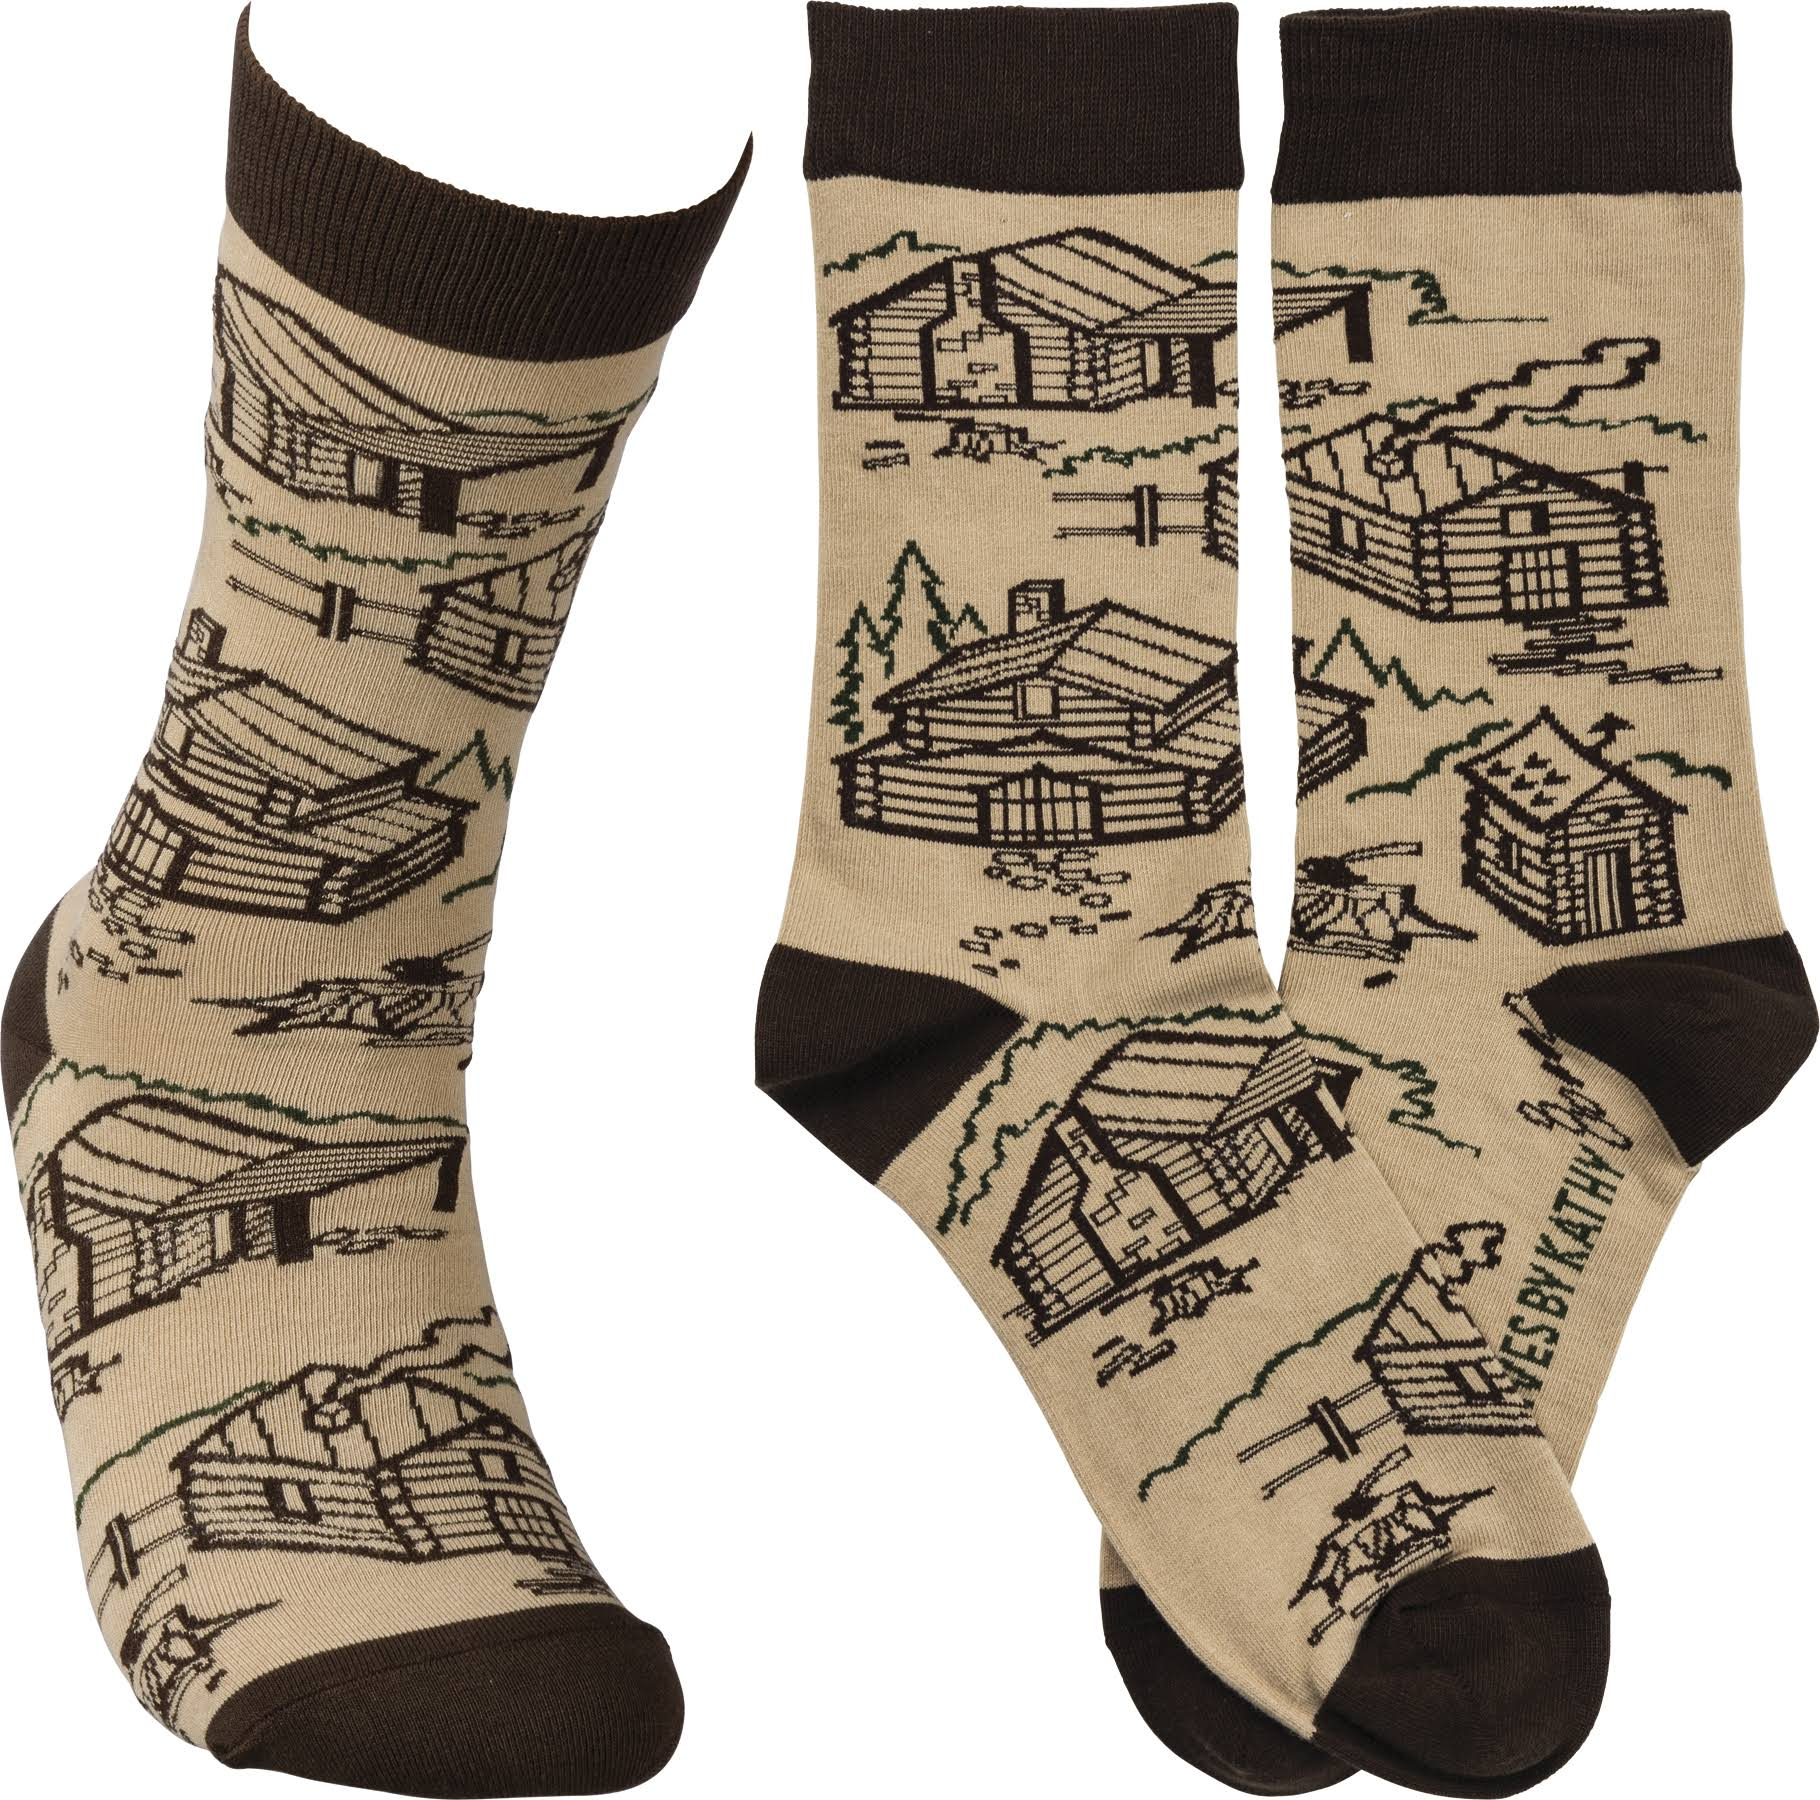 Primitives By Kathy Cabin Socks - One Size